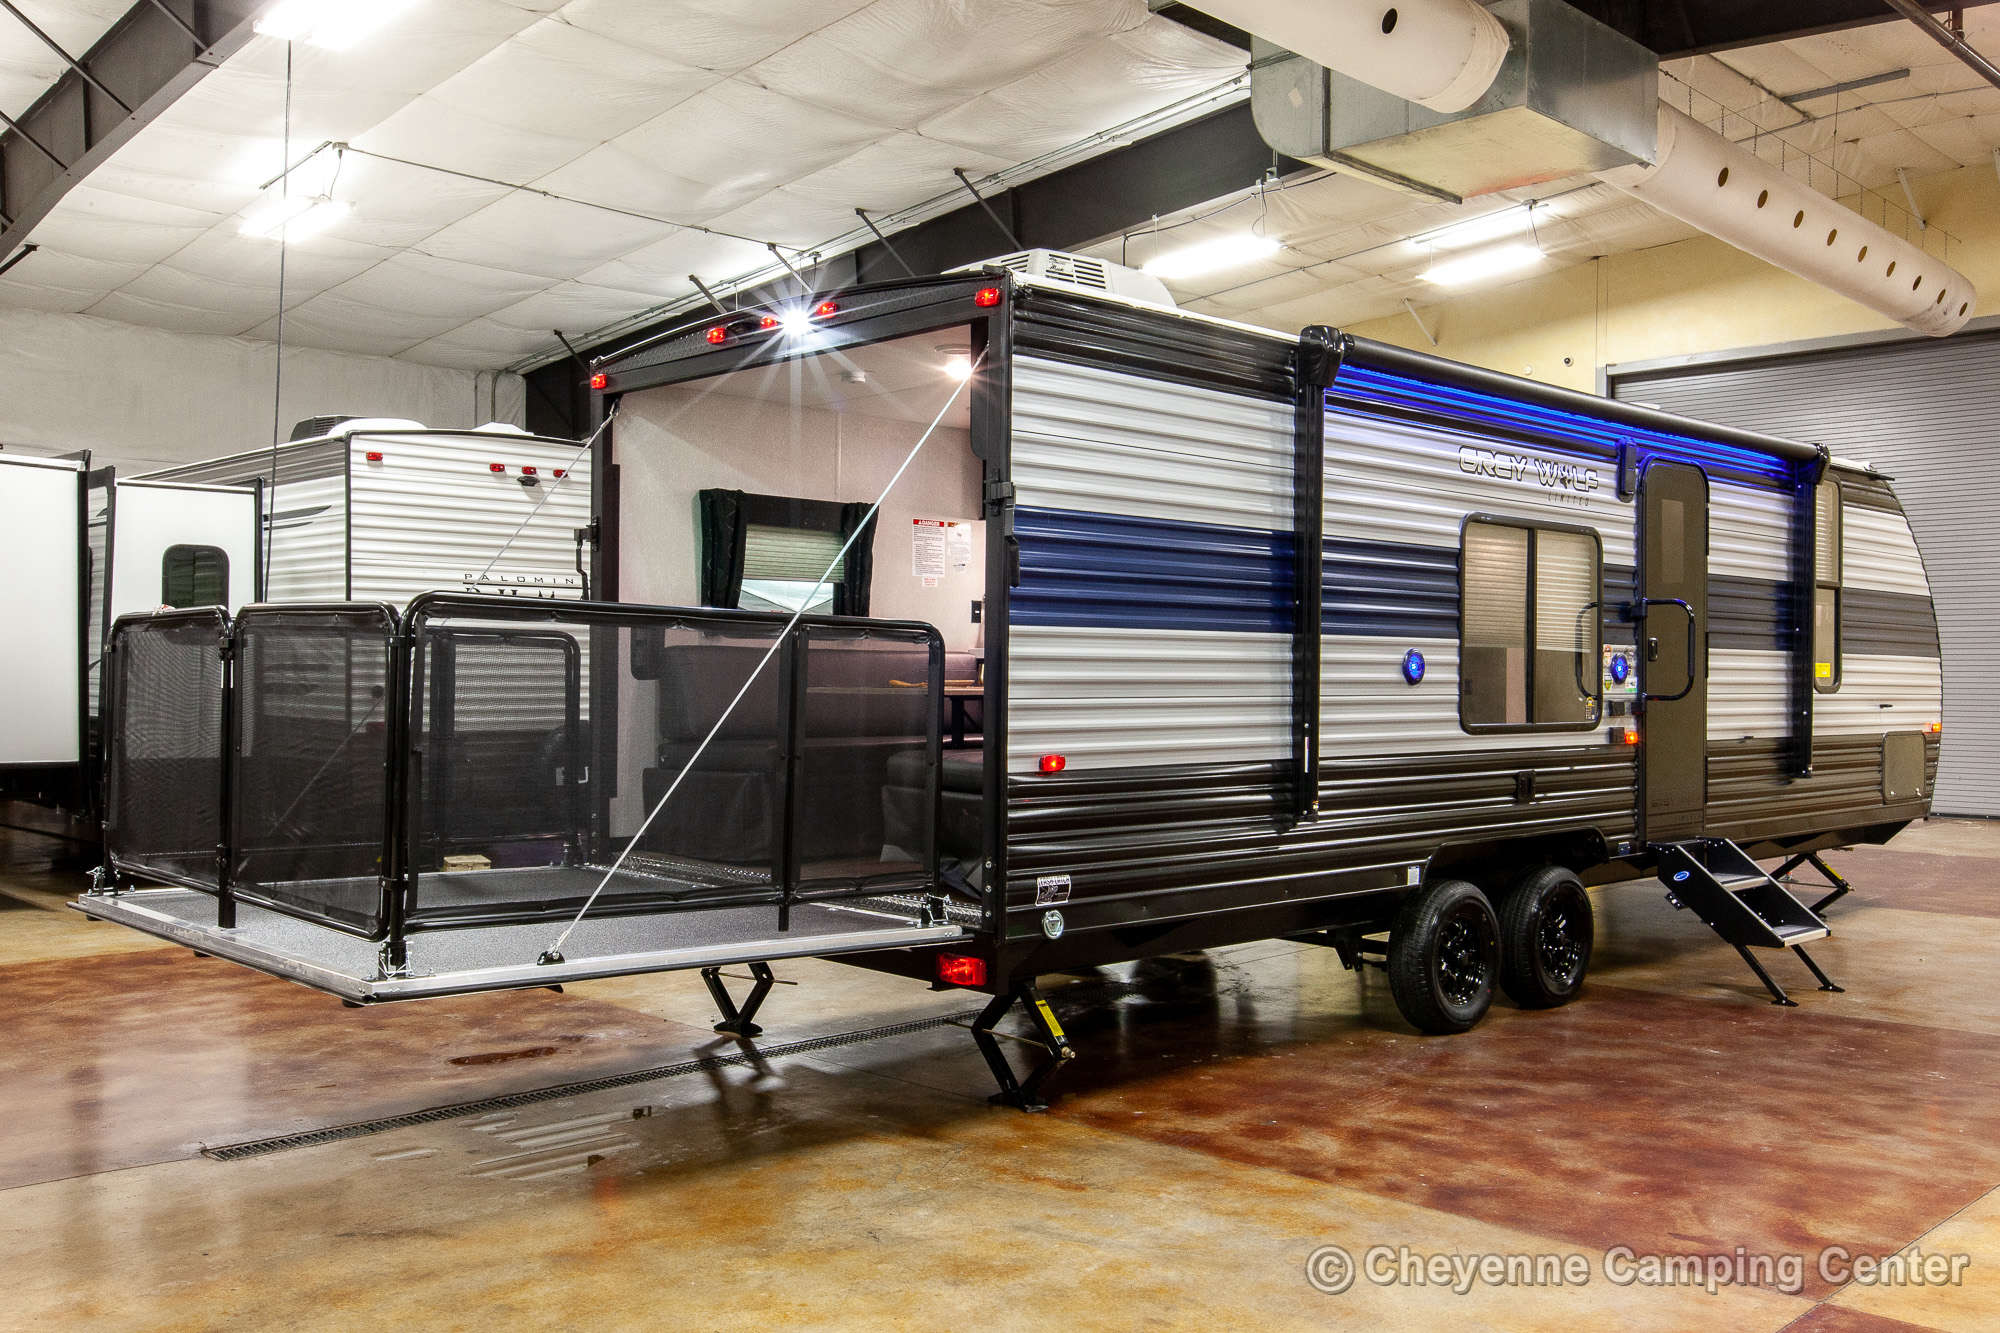 2021 Forest River Cherokee Grey Wolf 26RR Toy Hauler Travel Trailer Exterior Image